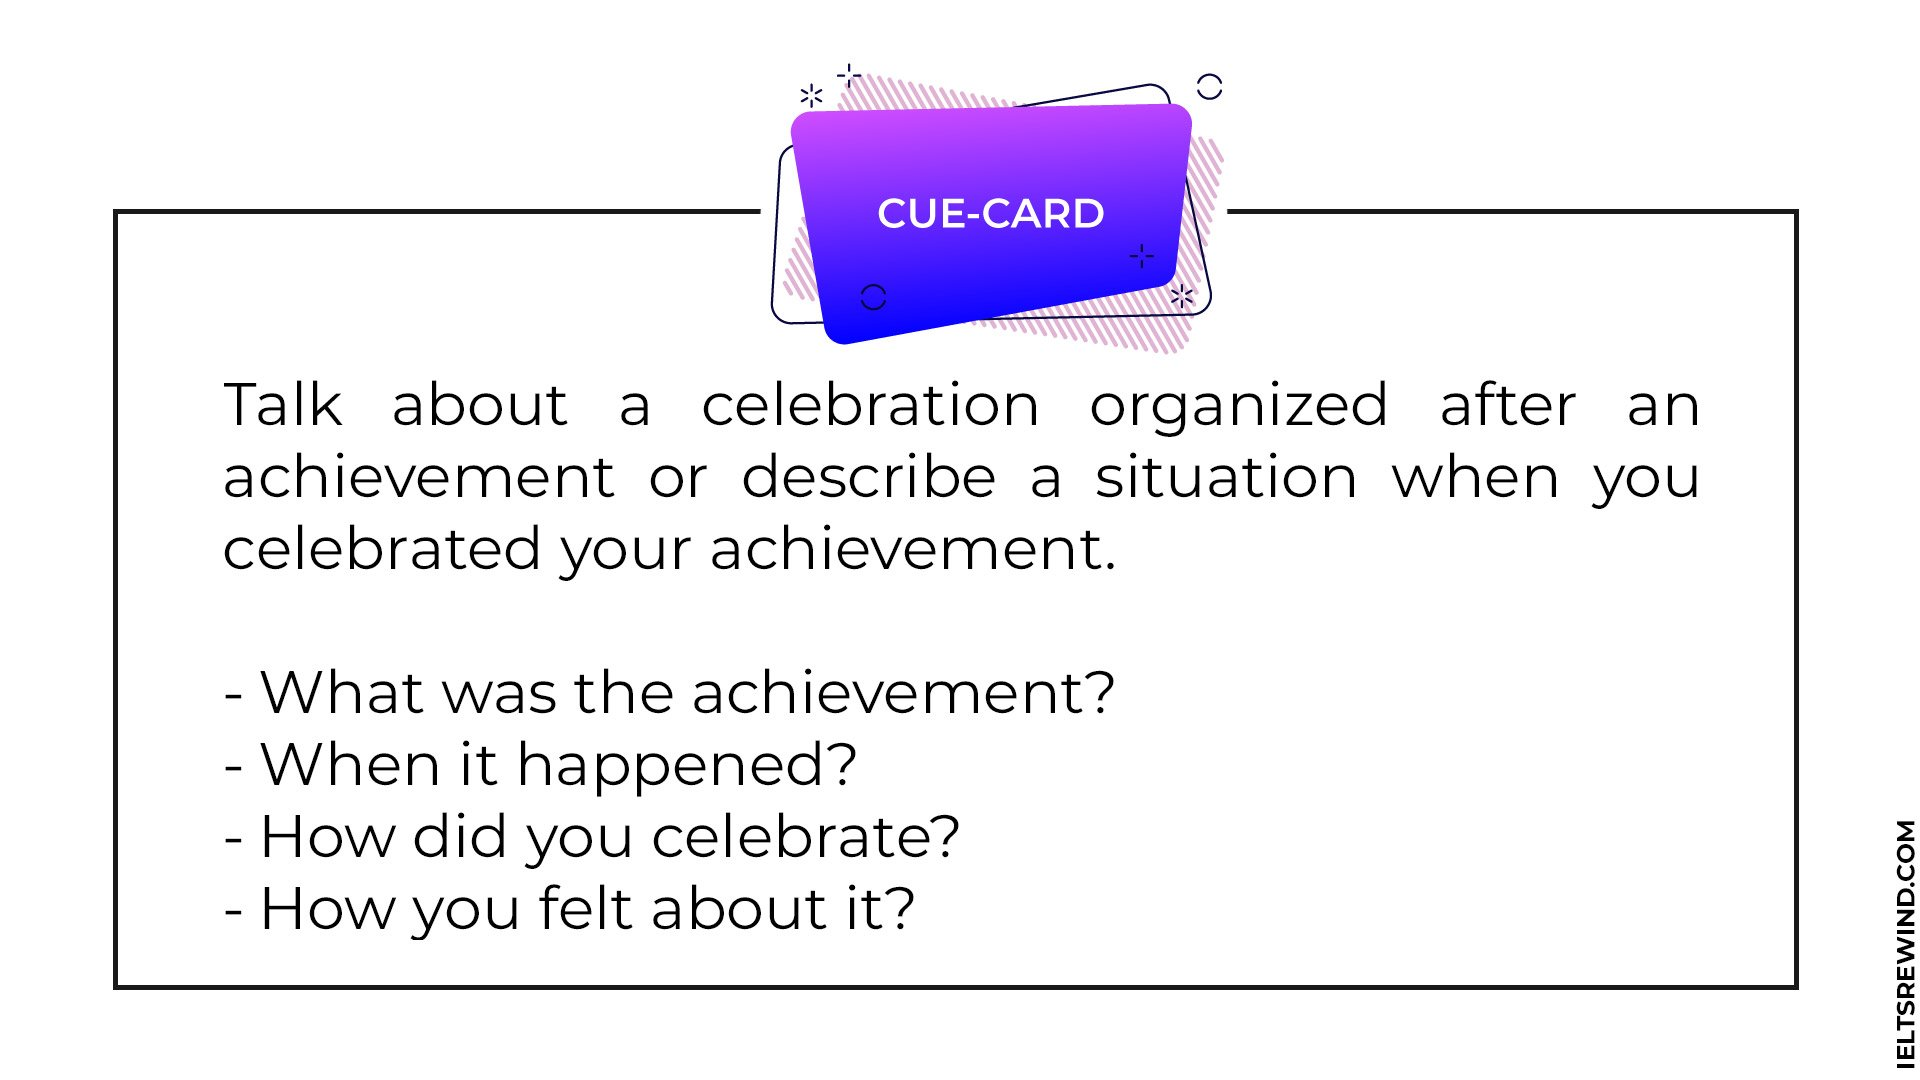 Talk about a celebration organized after an achievement or describe a situation when you celebrated your achievement.